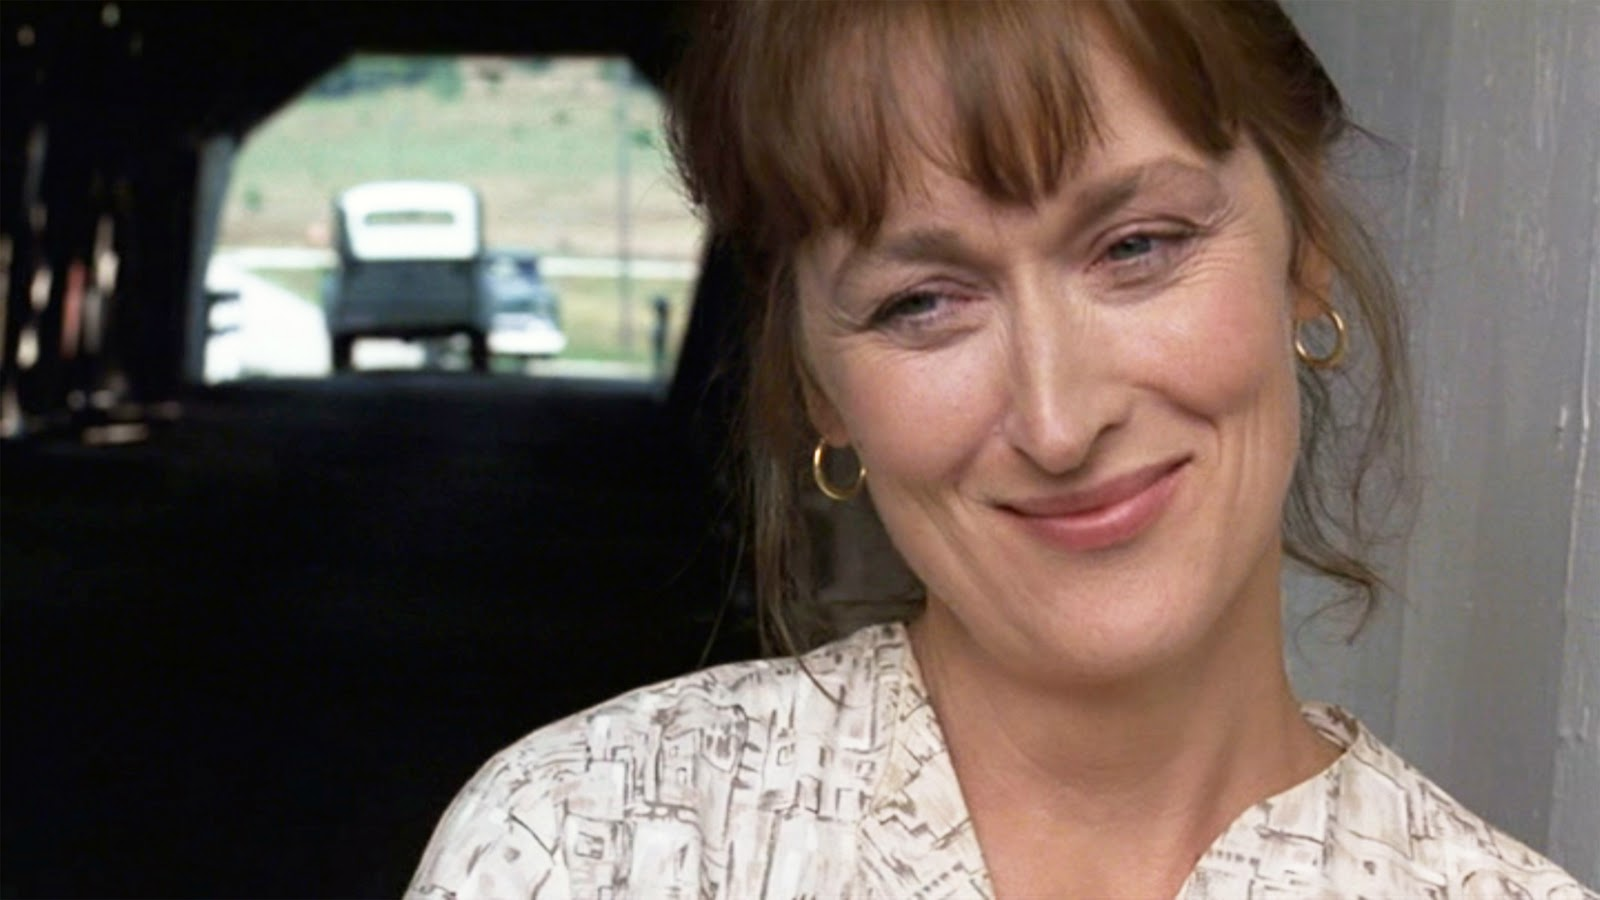 Why I Have Meryl Streep's DNA in a Box